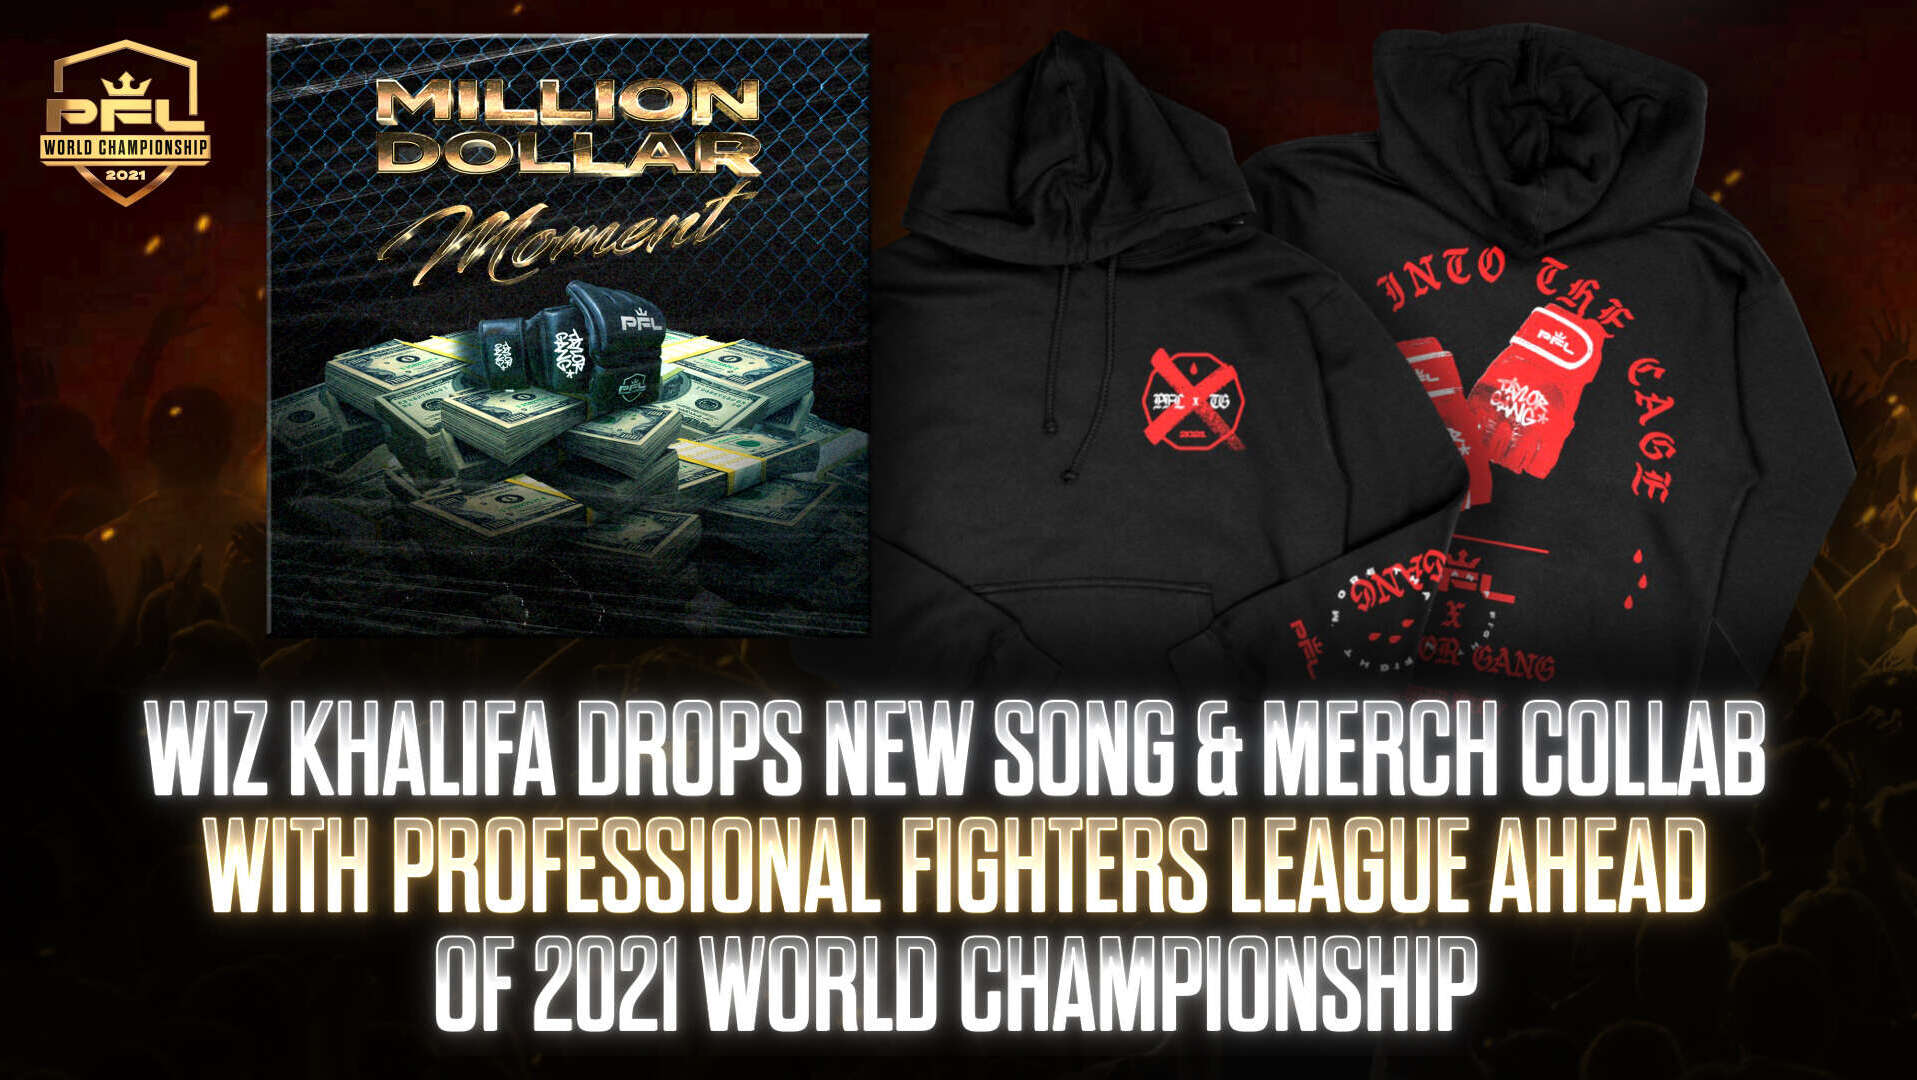 WIZ KHALIFA DROPS NEW SONG & MERCH COLLAB WITH PROFESSIONAL FIGHTERS LEAGUE AHEAD OF 2021 WORLD CHAMPIONSHIP